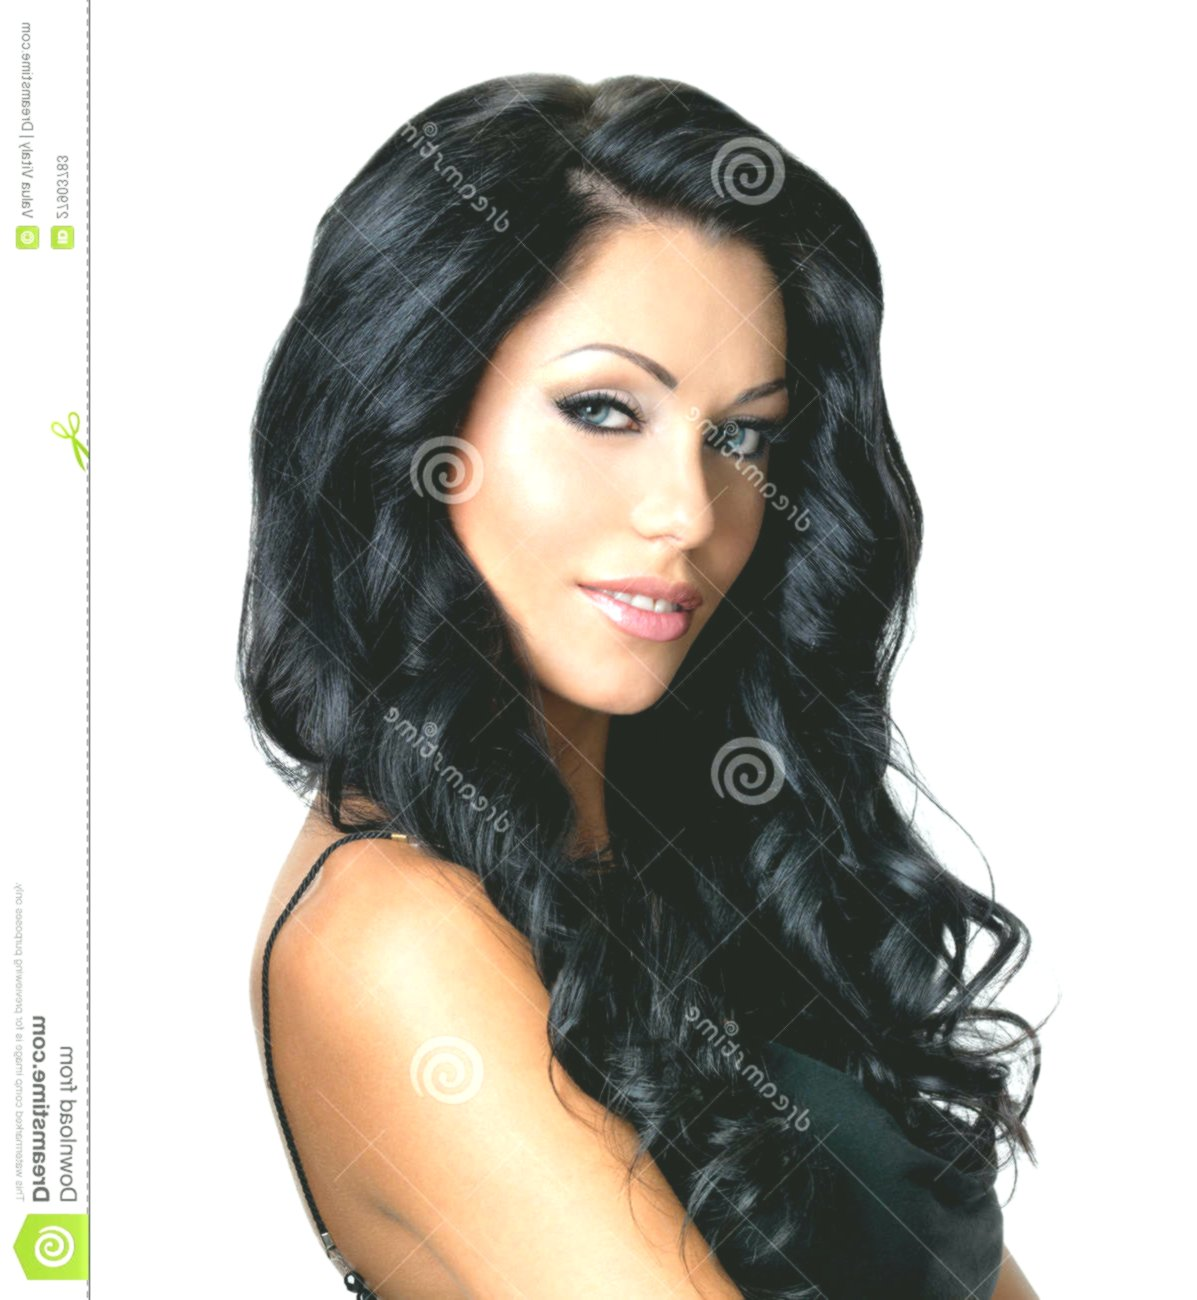 lovely black long hair online Amazing Black Long Hair Wall